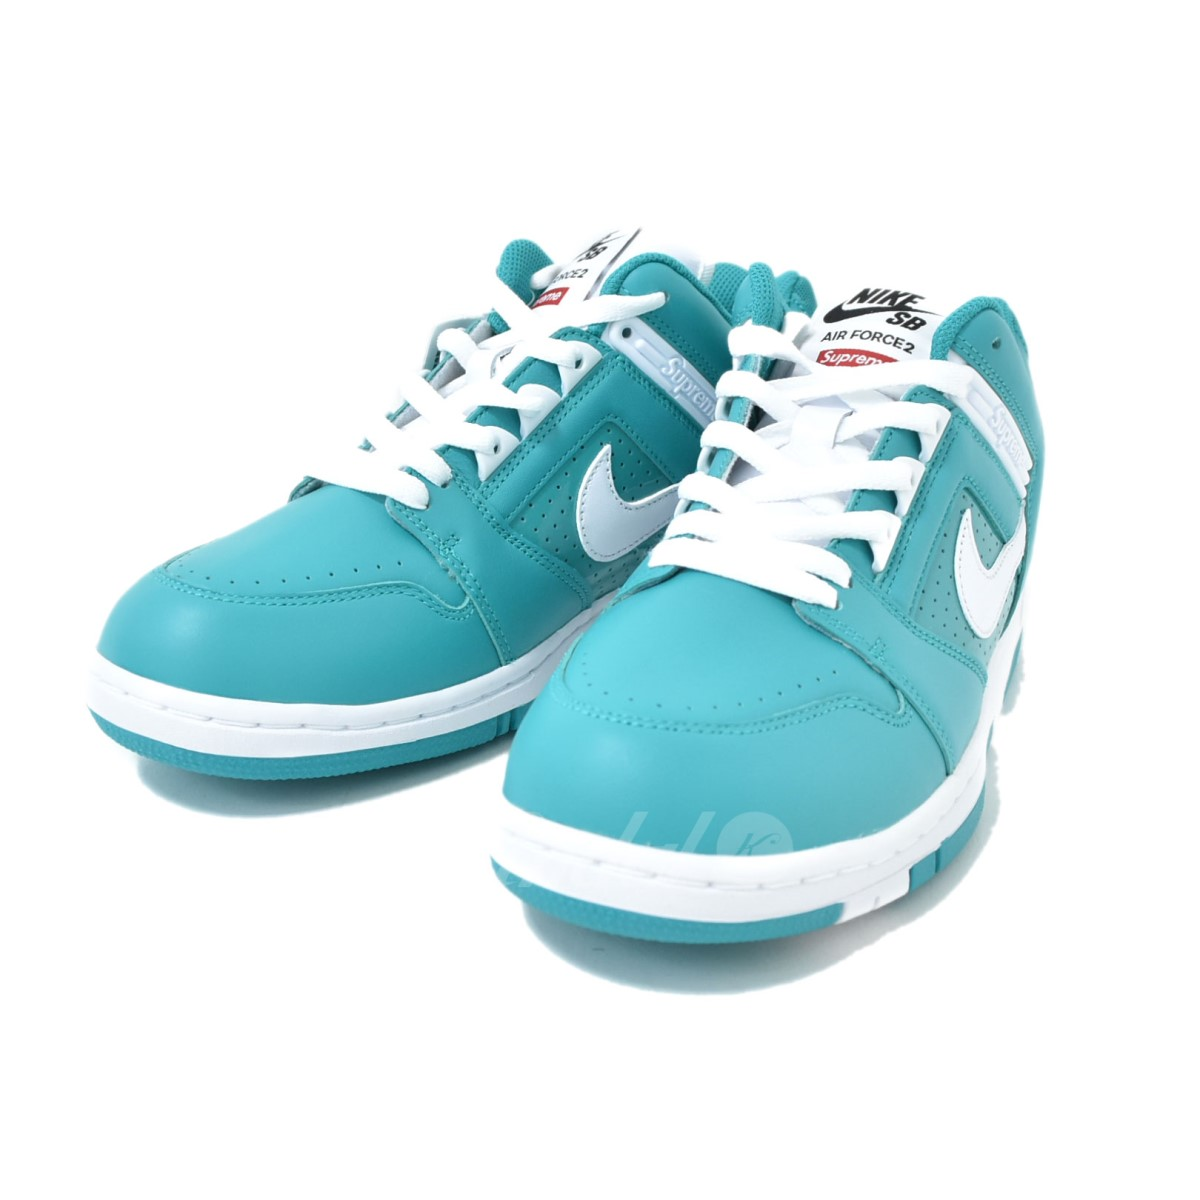 Frequency 2 Green Air SizeUs927cmシュプリームナイキエスビ Low Force Sneakers X Nike Sb Supreme Cut RjL453Aqc